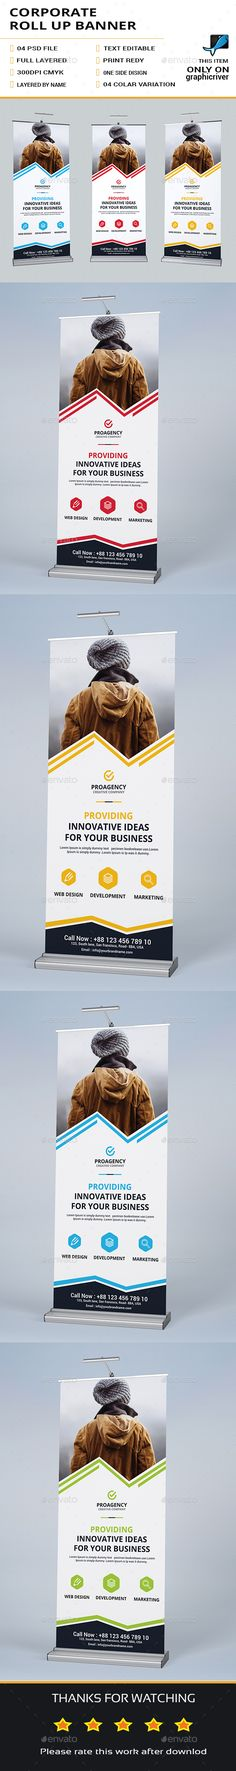 Corporate Roll Up Banner Template PSD. Download here: https://graphicriver.net/item/corporate-roll-up-banner/17330237?ref=ksioks